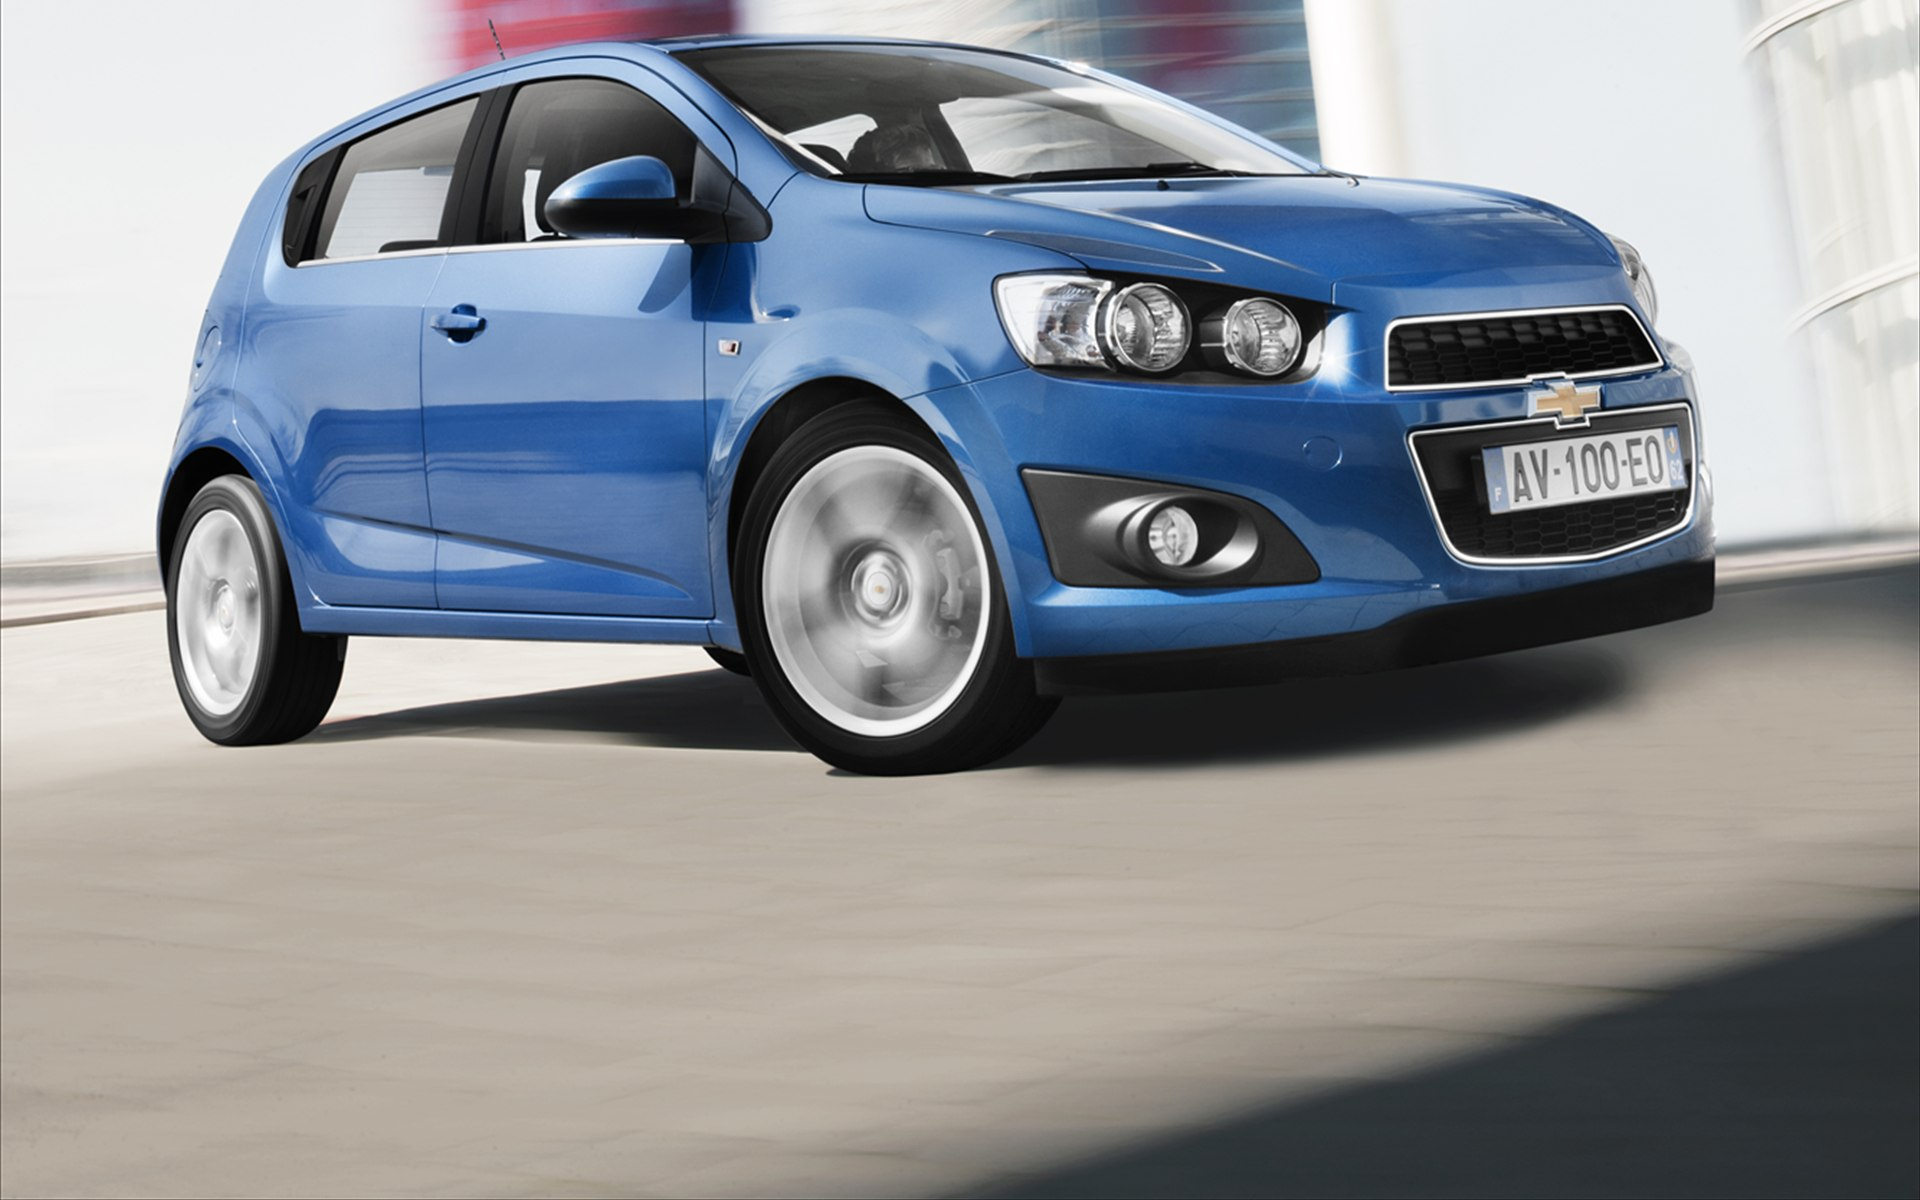 chevrolet aveo (ii) hatchback 2011 models #8